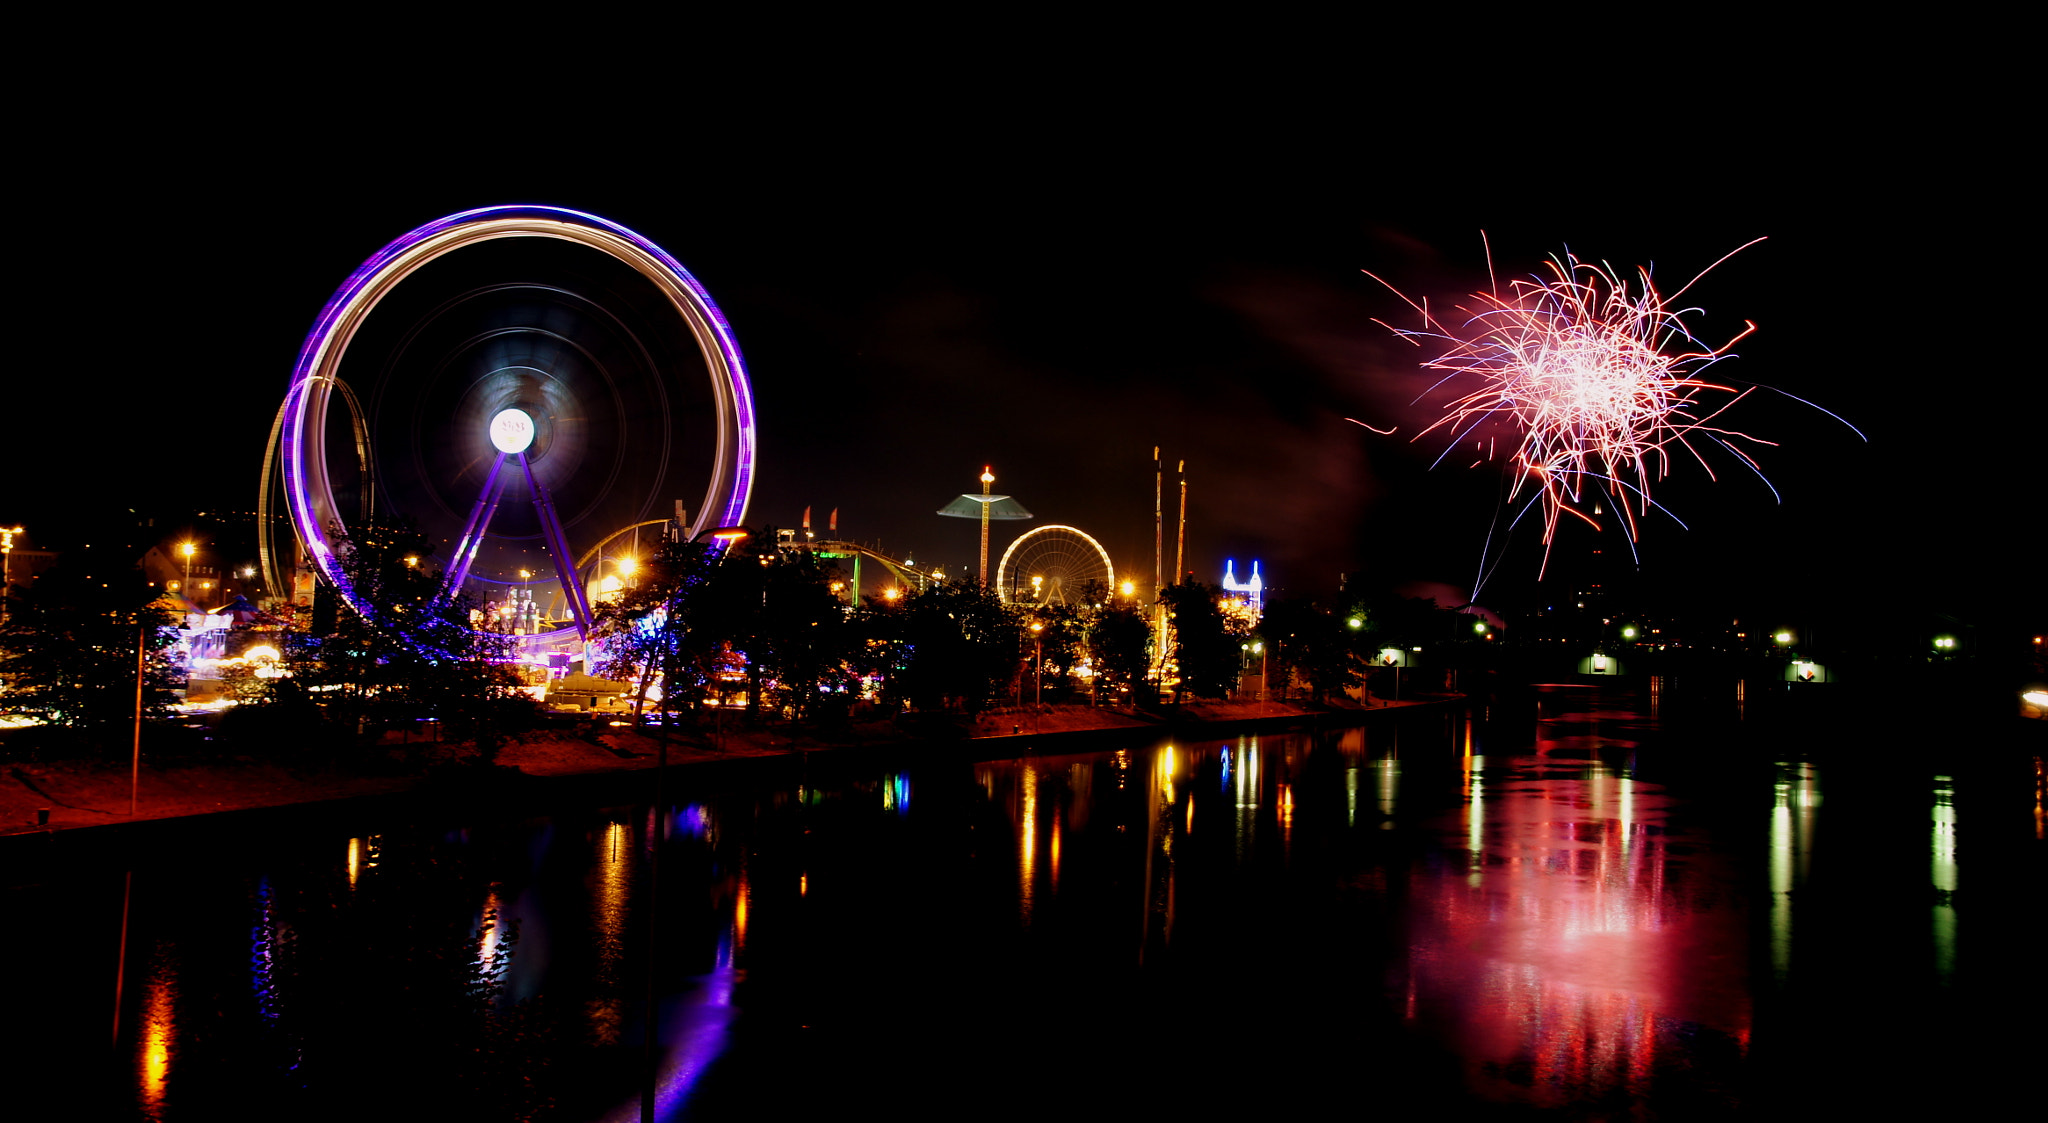 Photograph Fireworks in Germany by Ramesh  Mohan on 500px